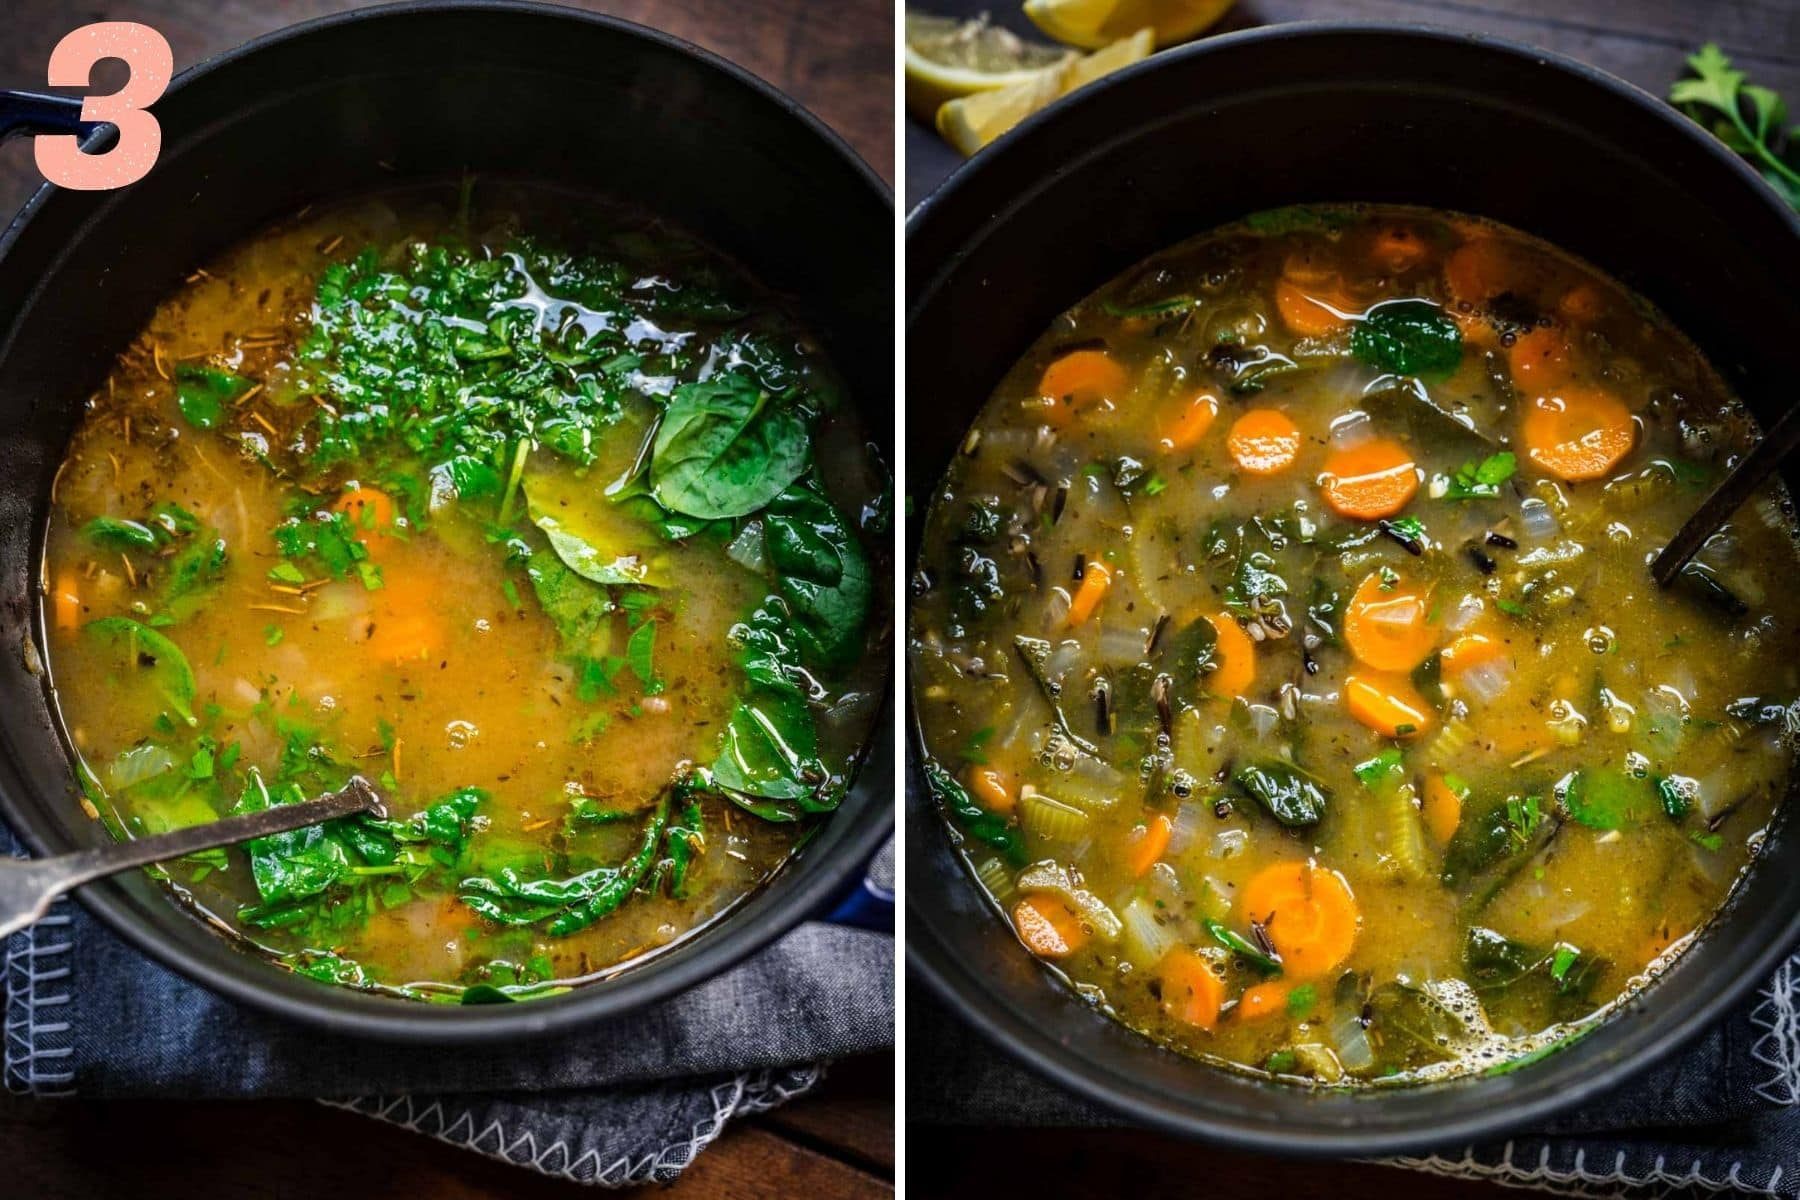 On the left: spinach and parsley added to pot. On the right: finished soup.